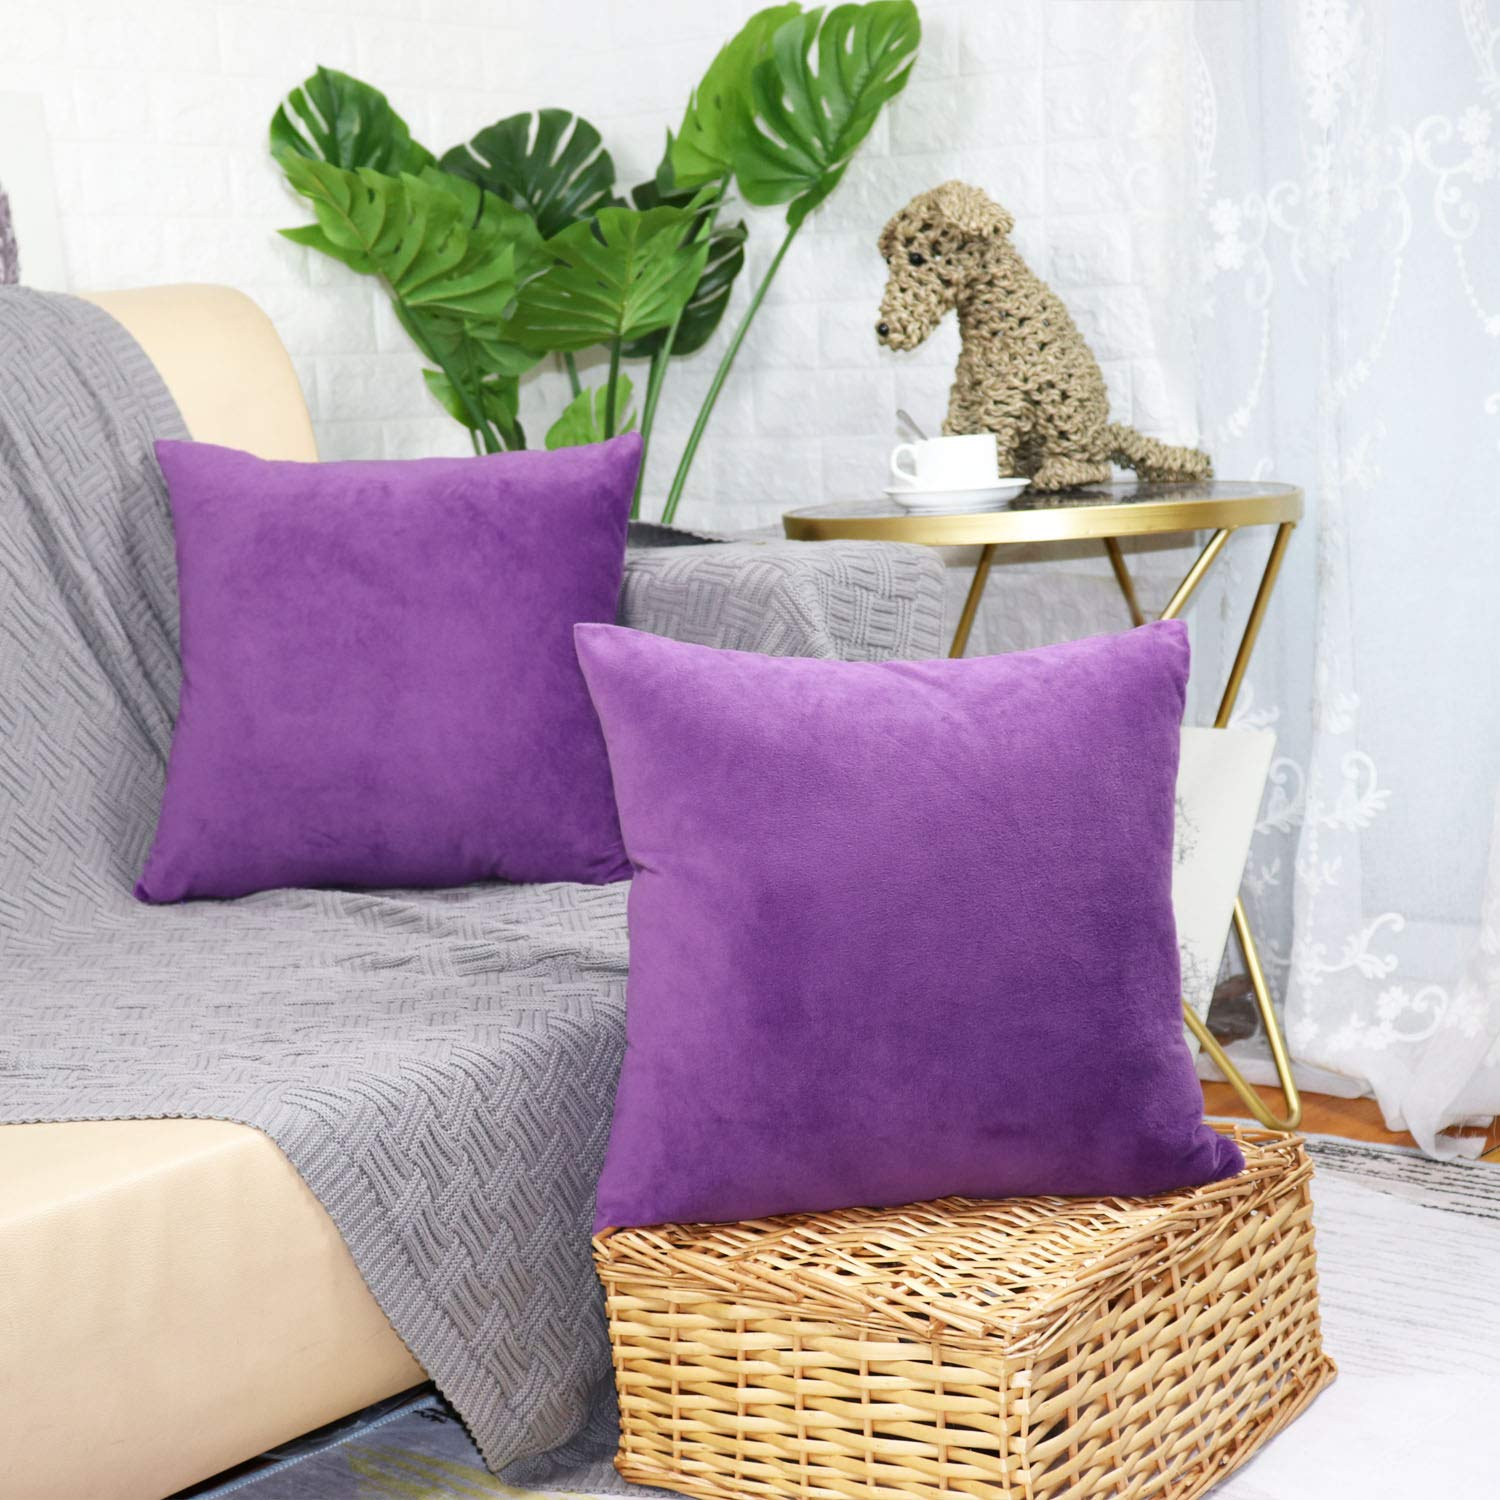 sykting Decorative Pillow Covers 18 x 18 Square Pillow Cases Set of 5 Coushion Covers Spring Colorful Cotton Linen JWstyle1000